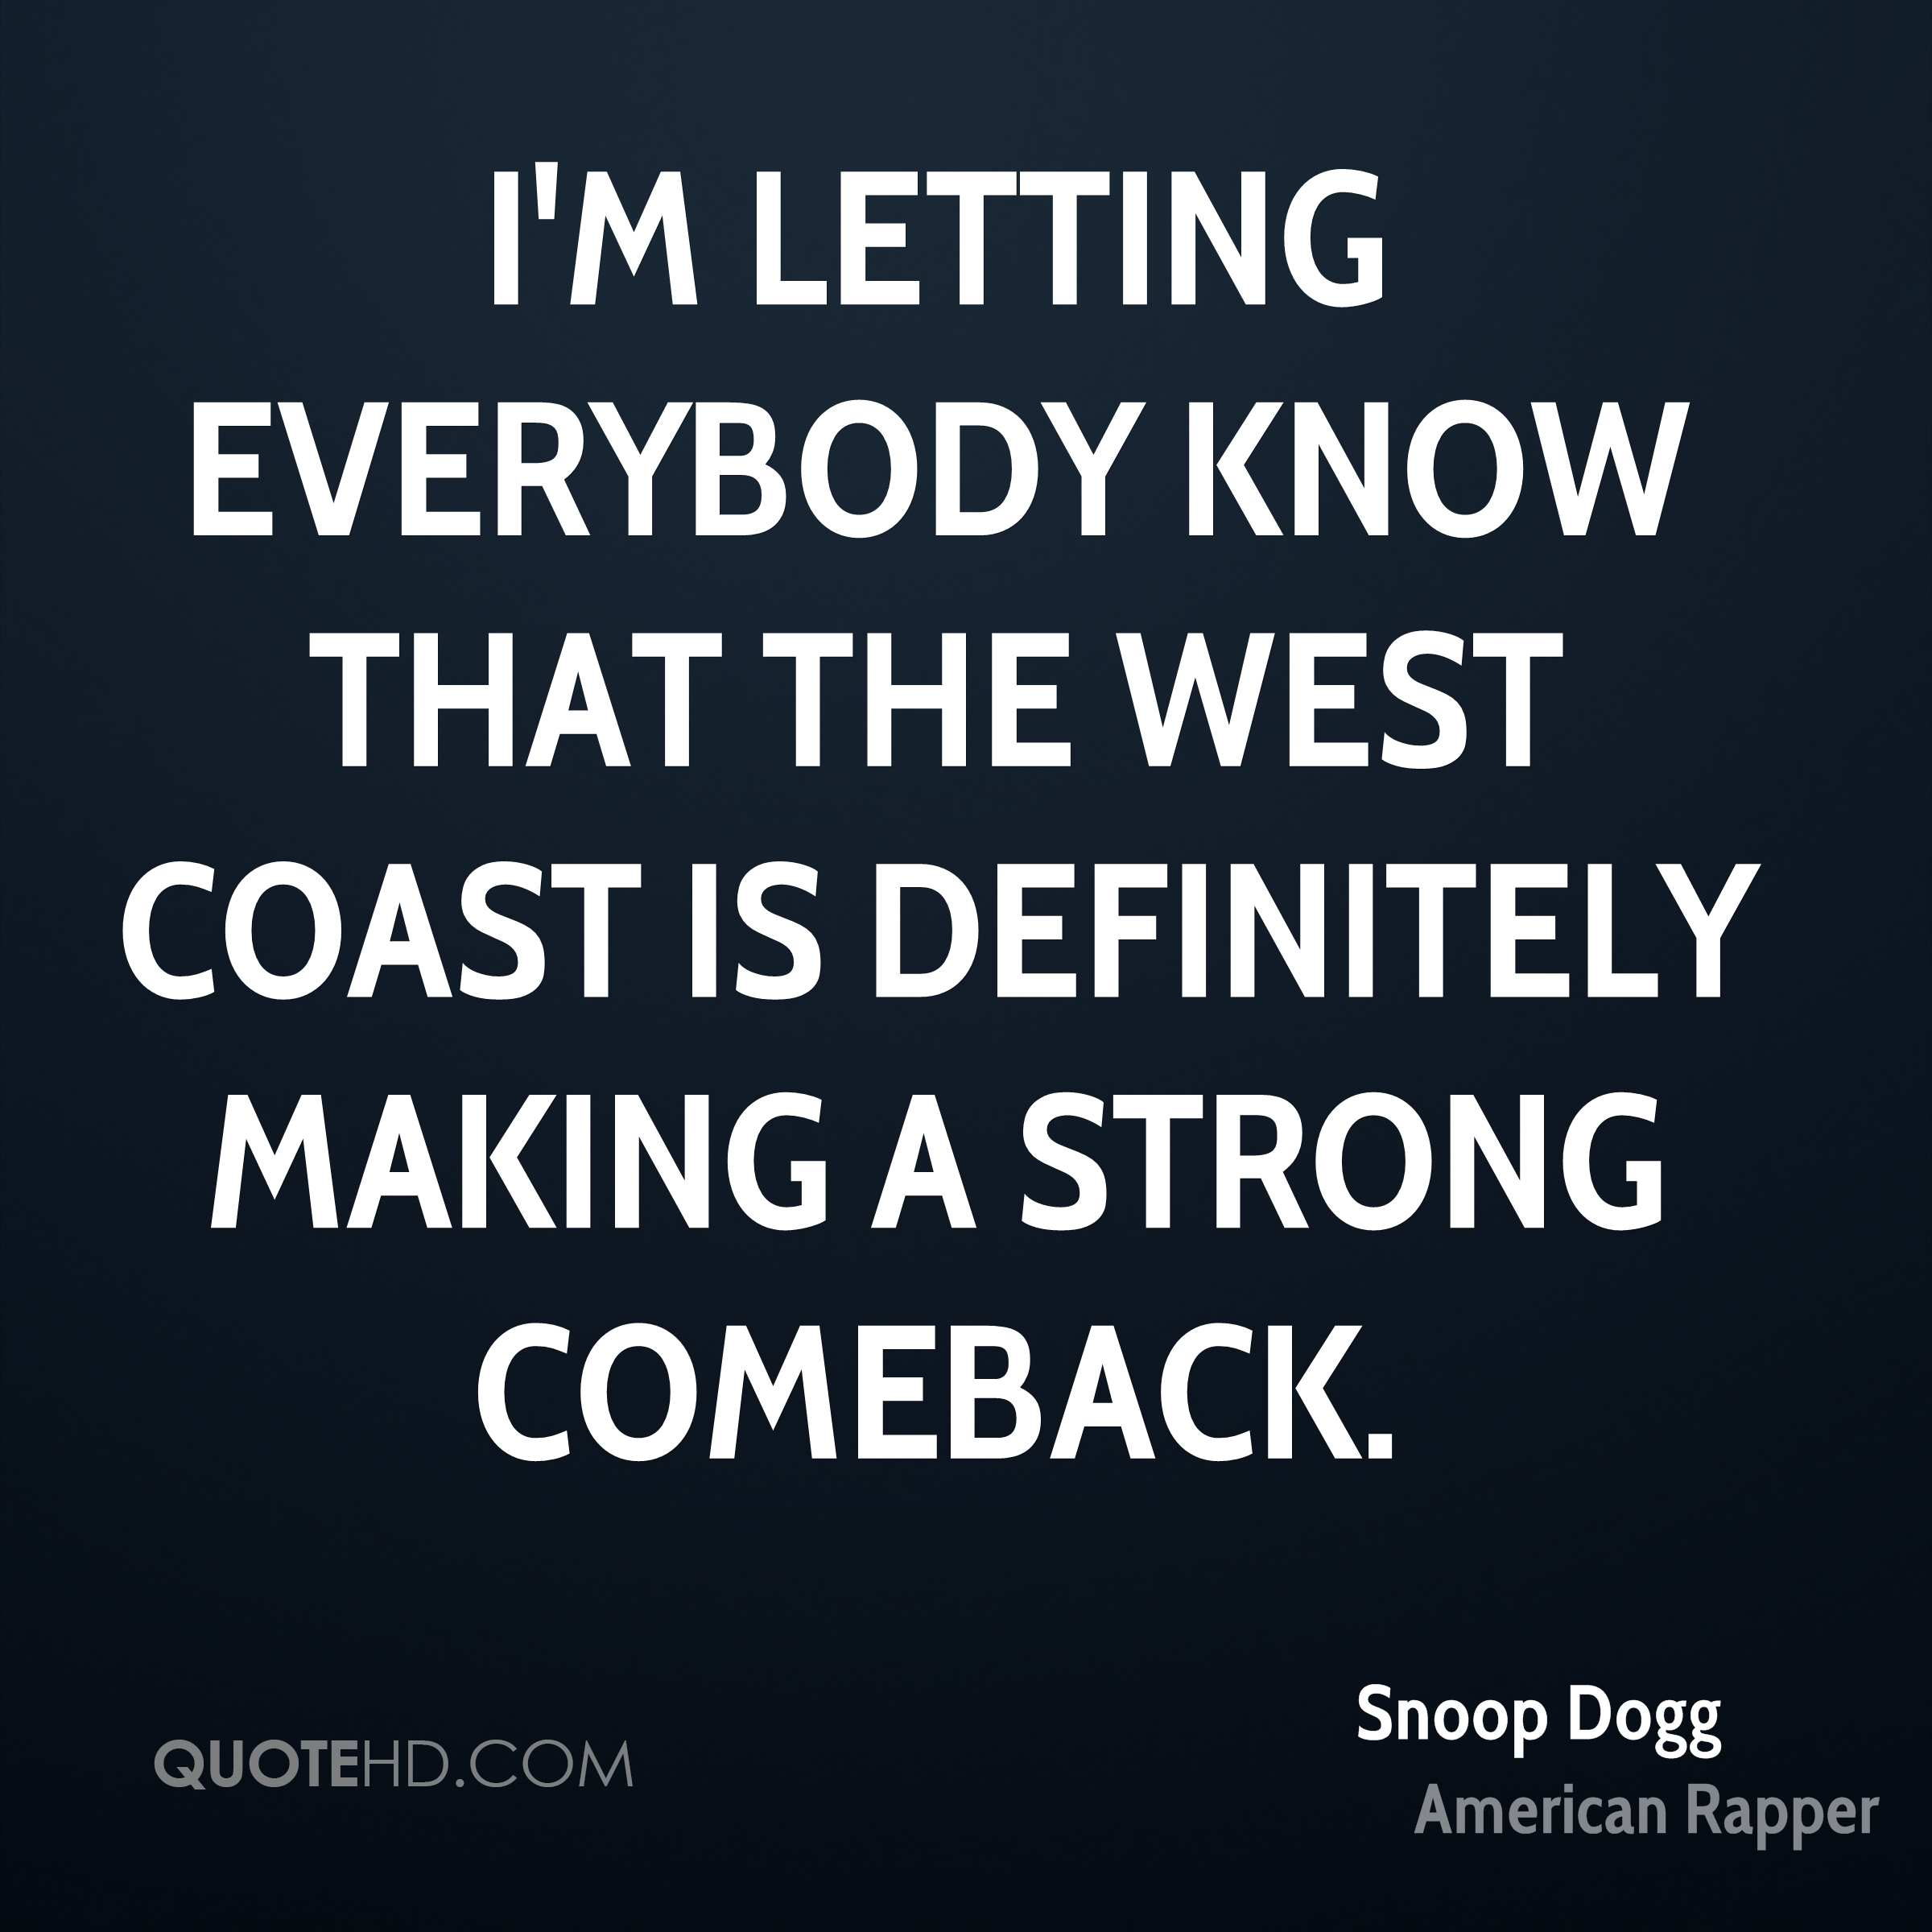 I'm letting everybody know that the West Coast is definitely making a strong comeback.